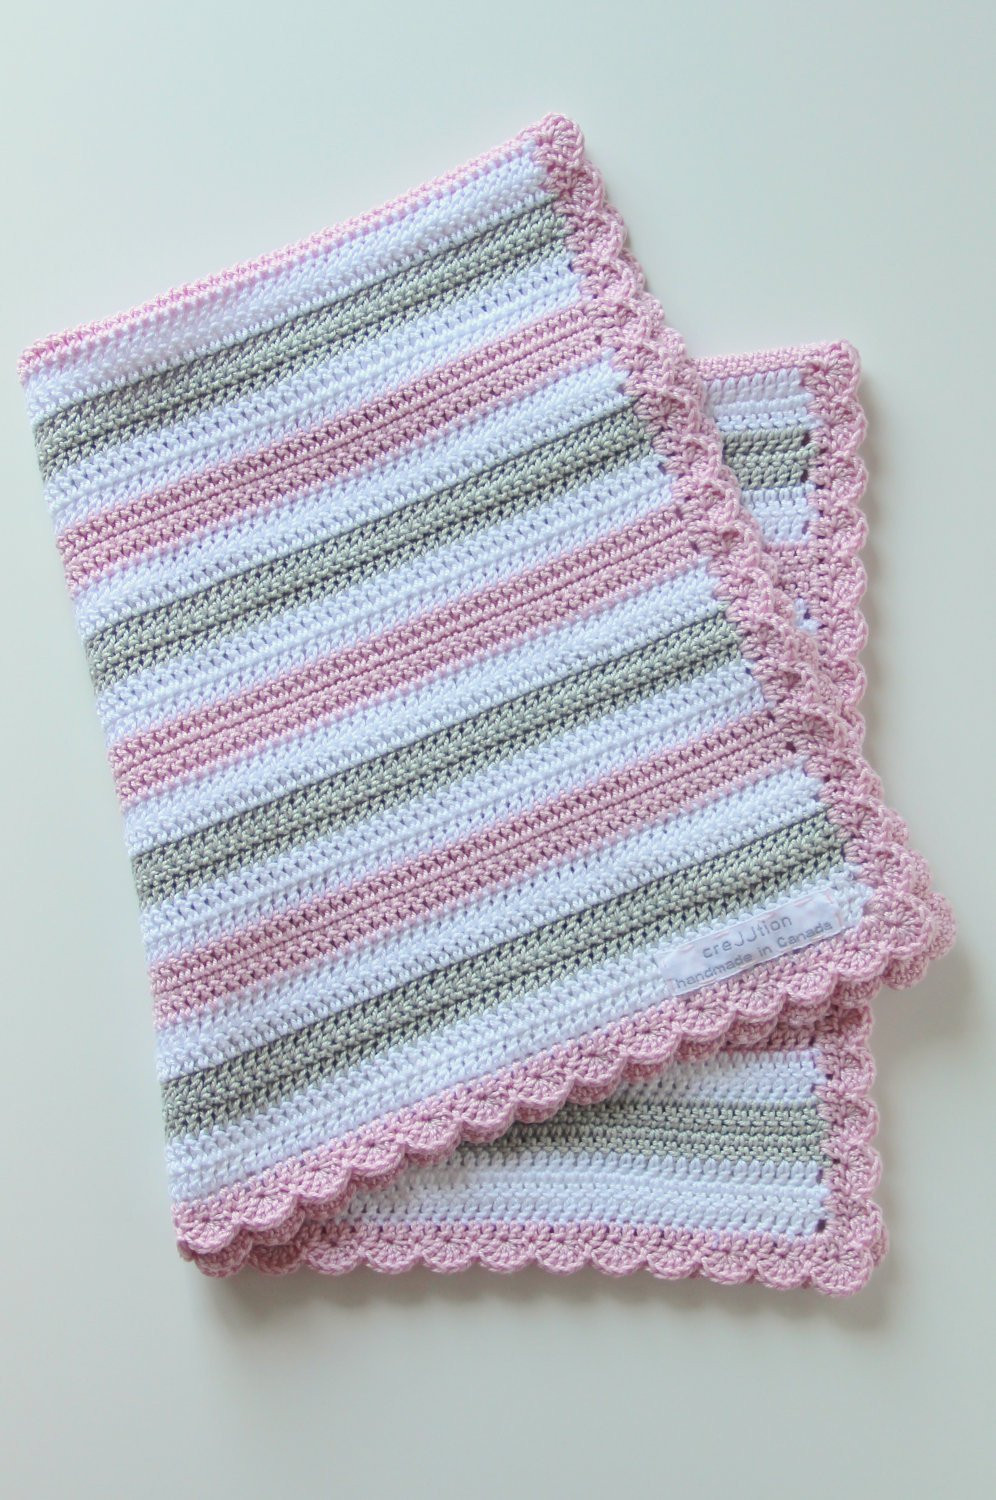 Luxury Crochet Pattern Newborn Baby Blanket From Crejjtion On Baby Patterns Of New 50 Ideas Baby Patterns